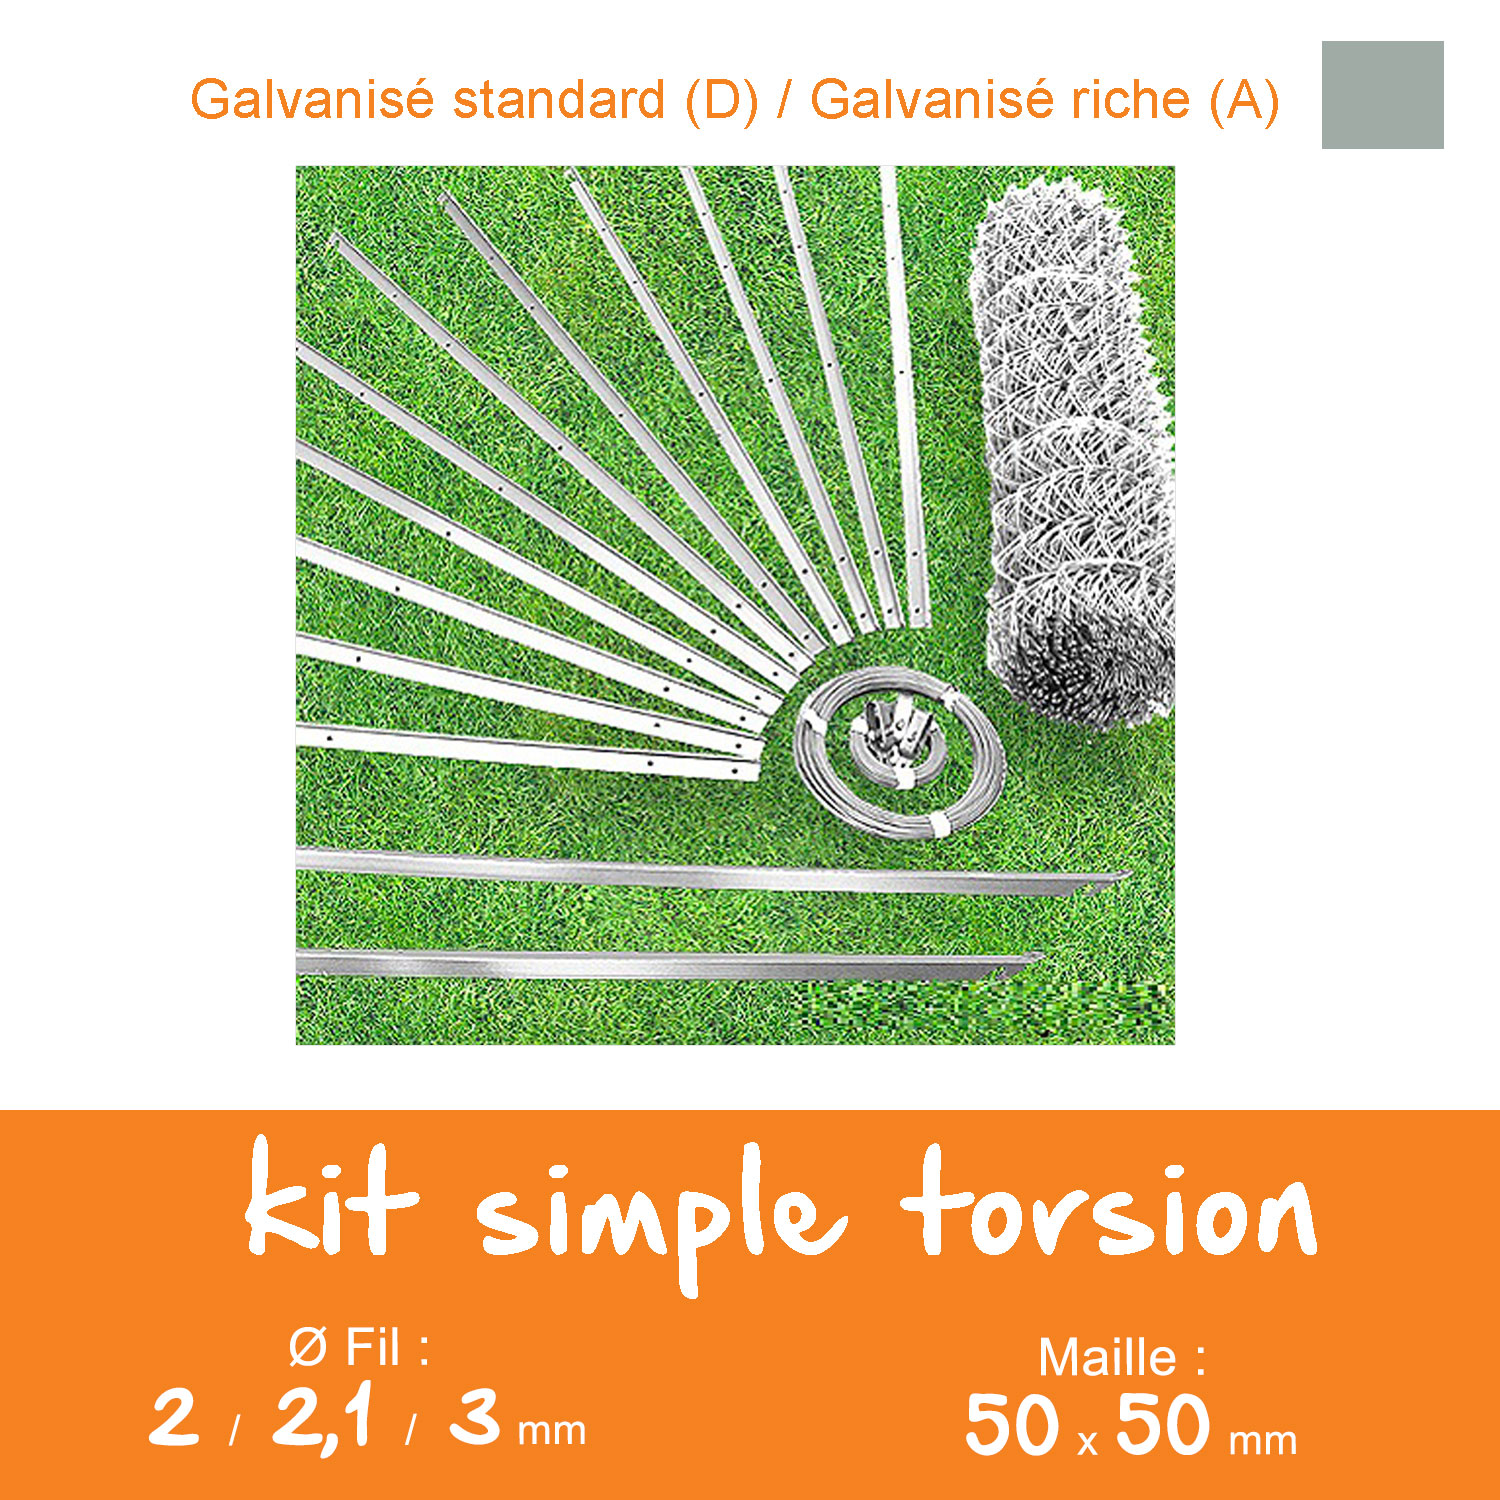 Kit grillage simple torsion 50 x 50 mm - Ø 2 / 2,1 / 3 mm - Lg. 25 m Galvanisé